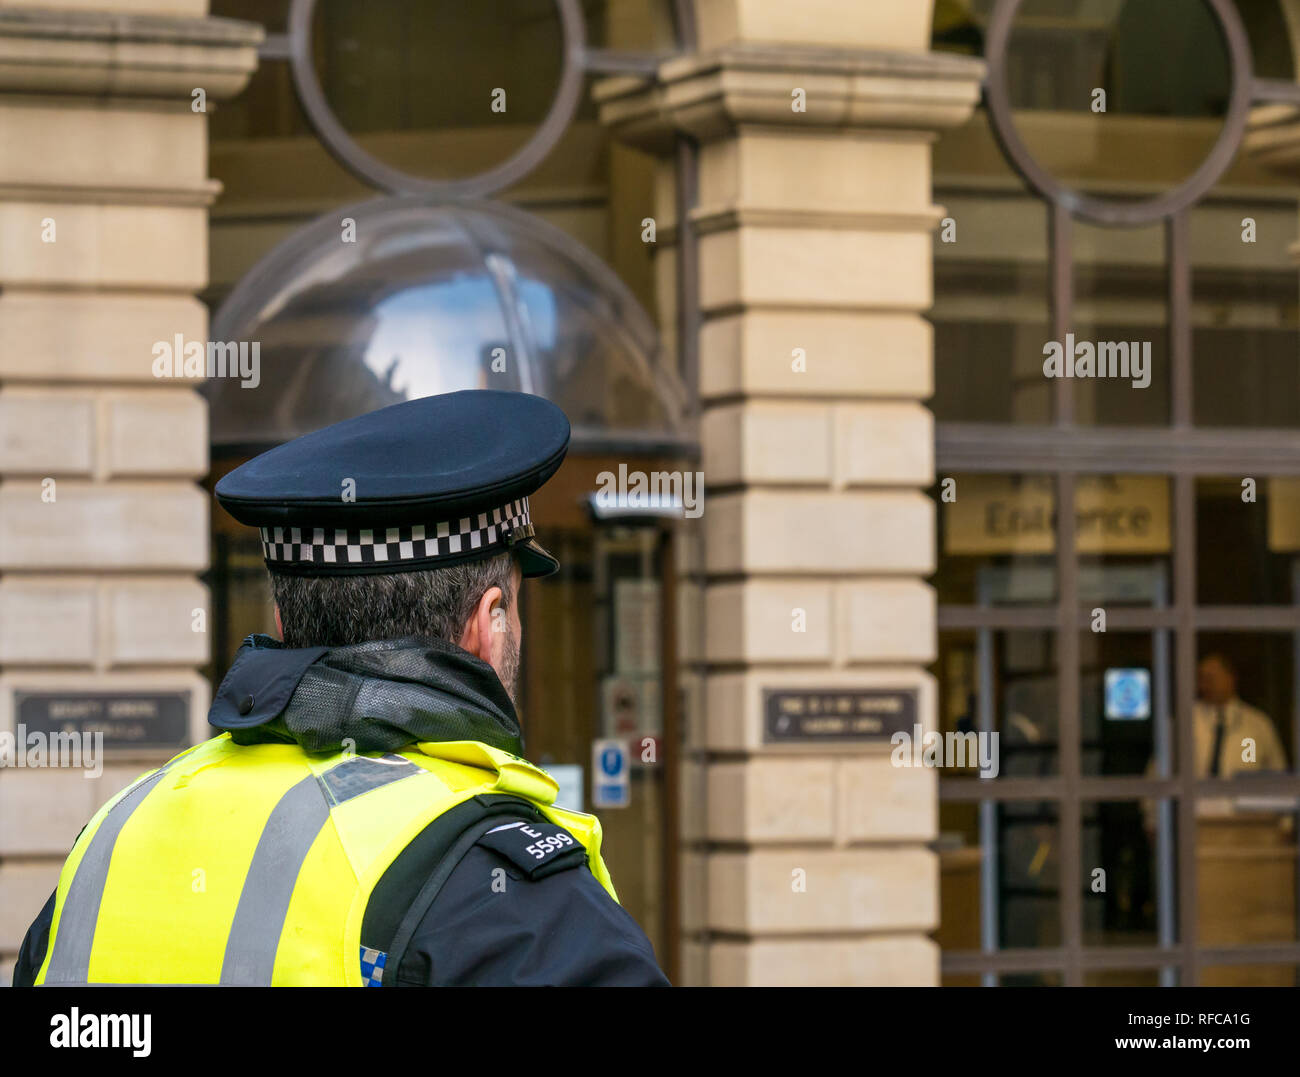 Policeman in yellow vest on duty at Edinburgh Sheriff Court. Edinburgh, Scotland, UK - Stock Image